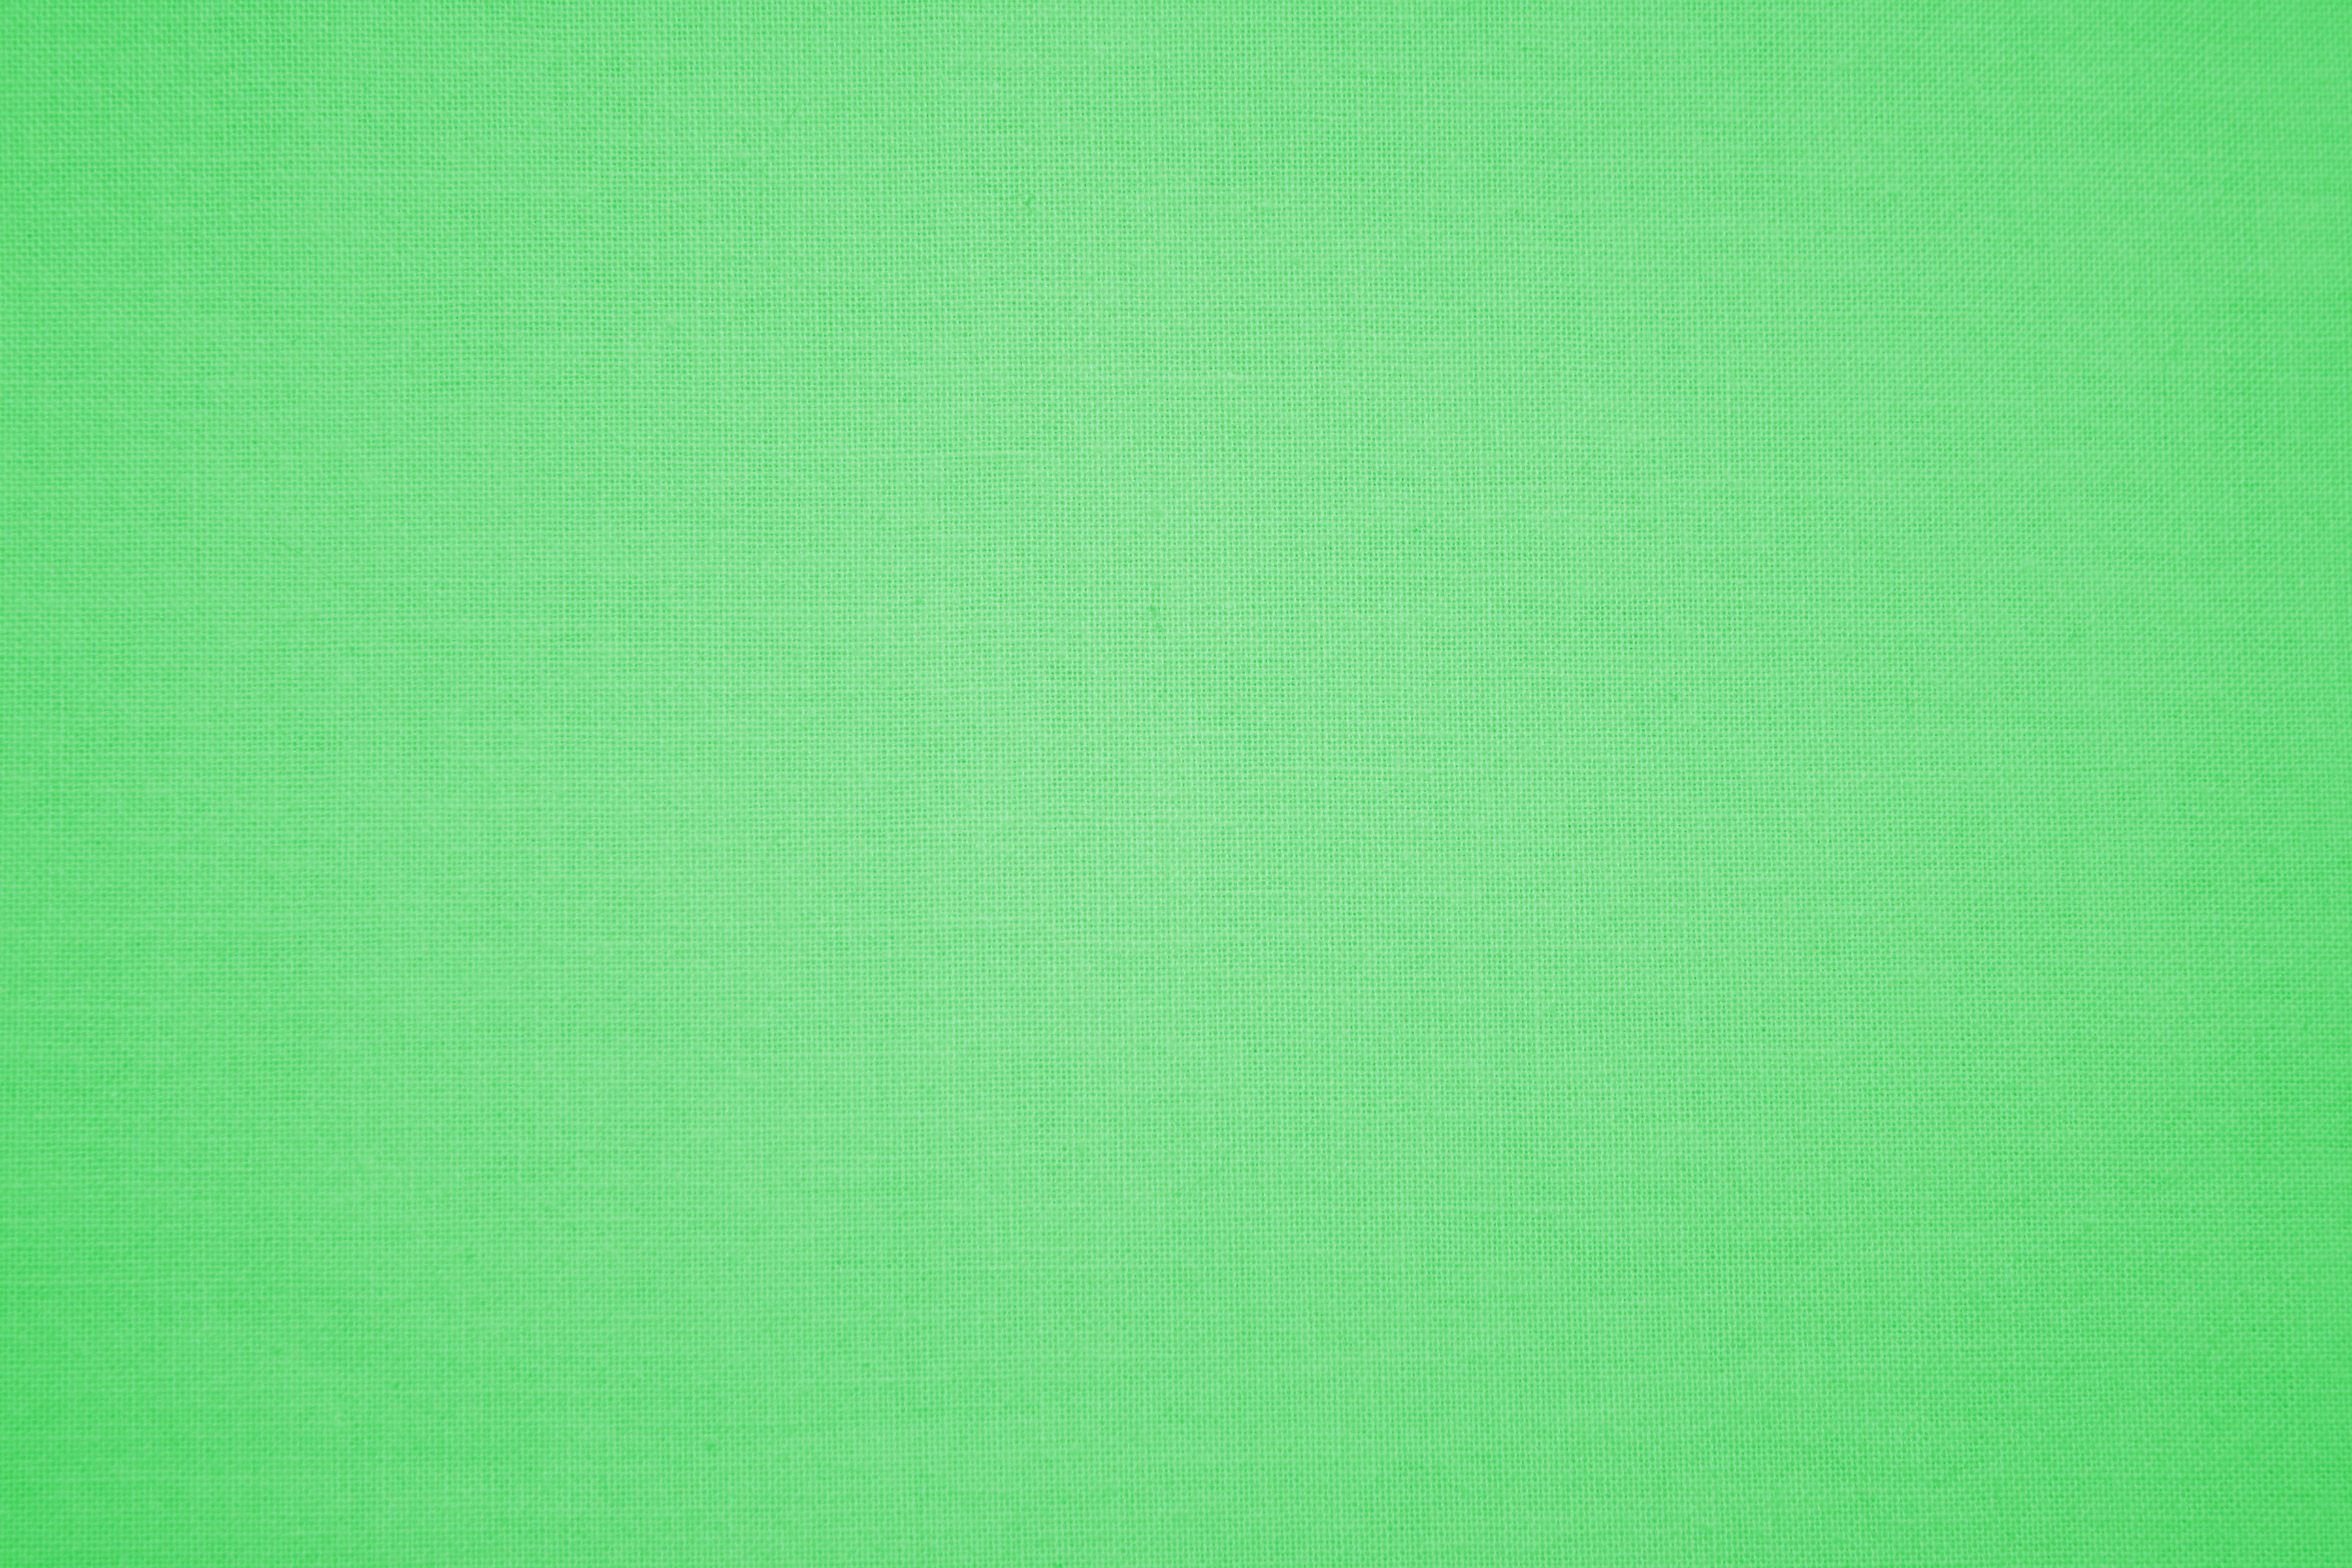 Light Green Canvas Fabric Texture Picture Photograph Photos 3600x2400